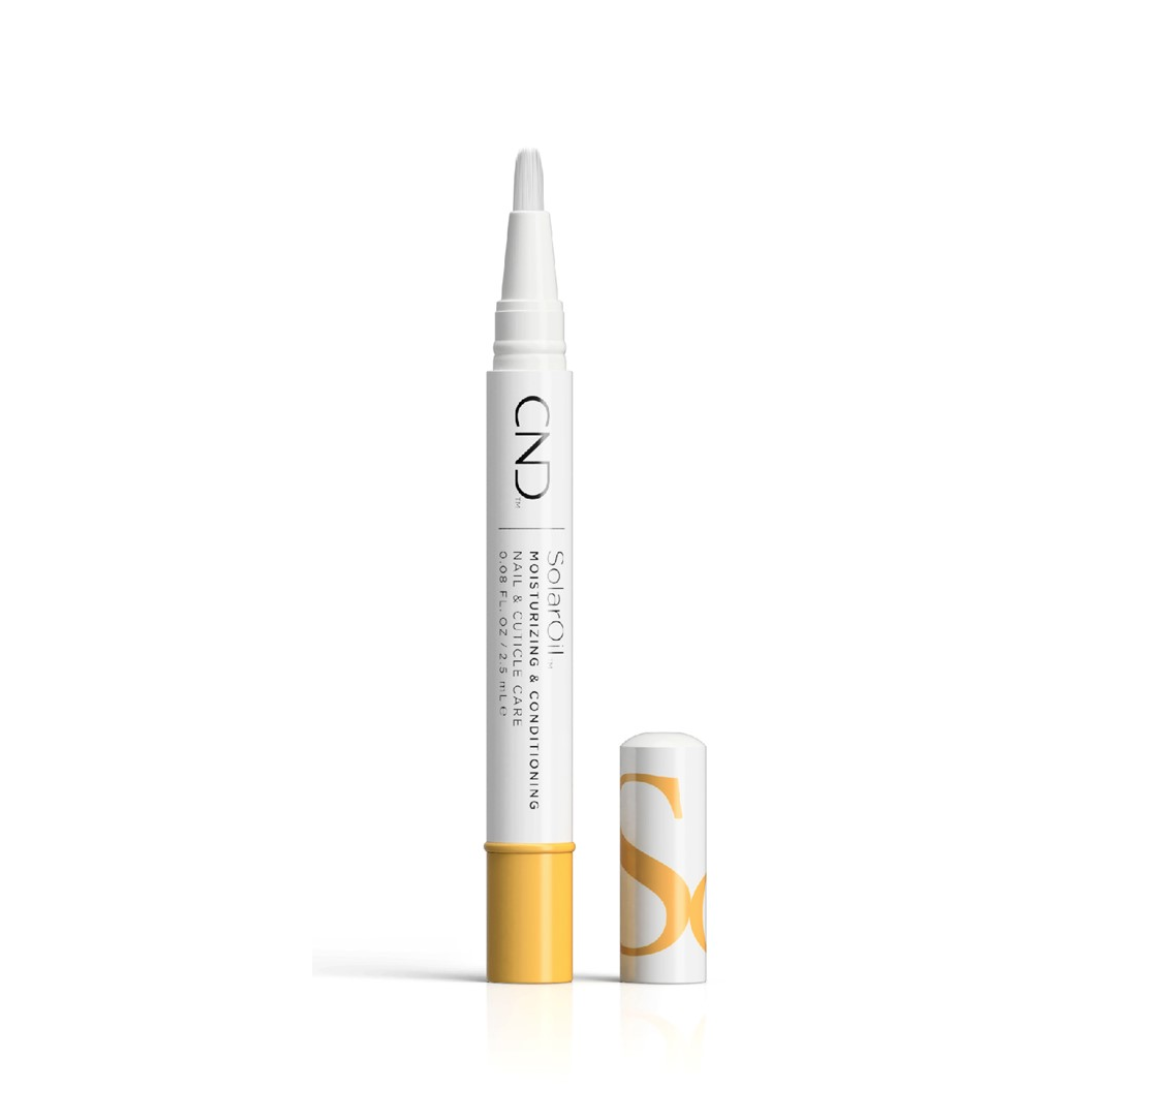 CND SolarOil™ Nail & Cuticle Treatment PEN